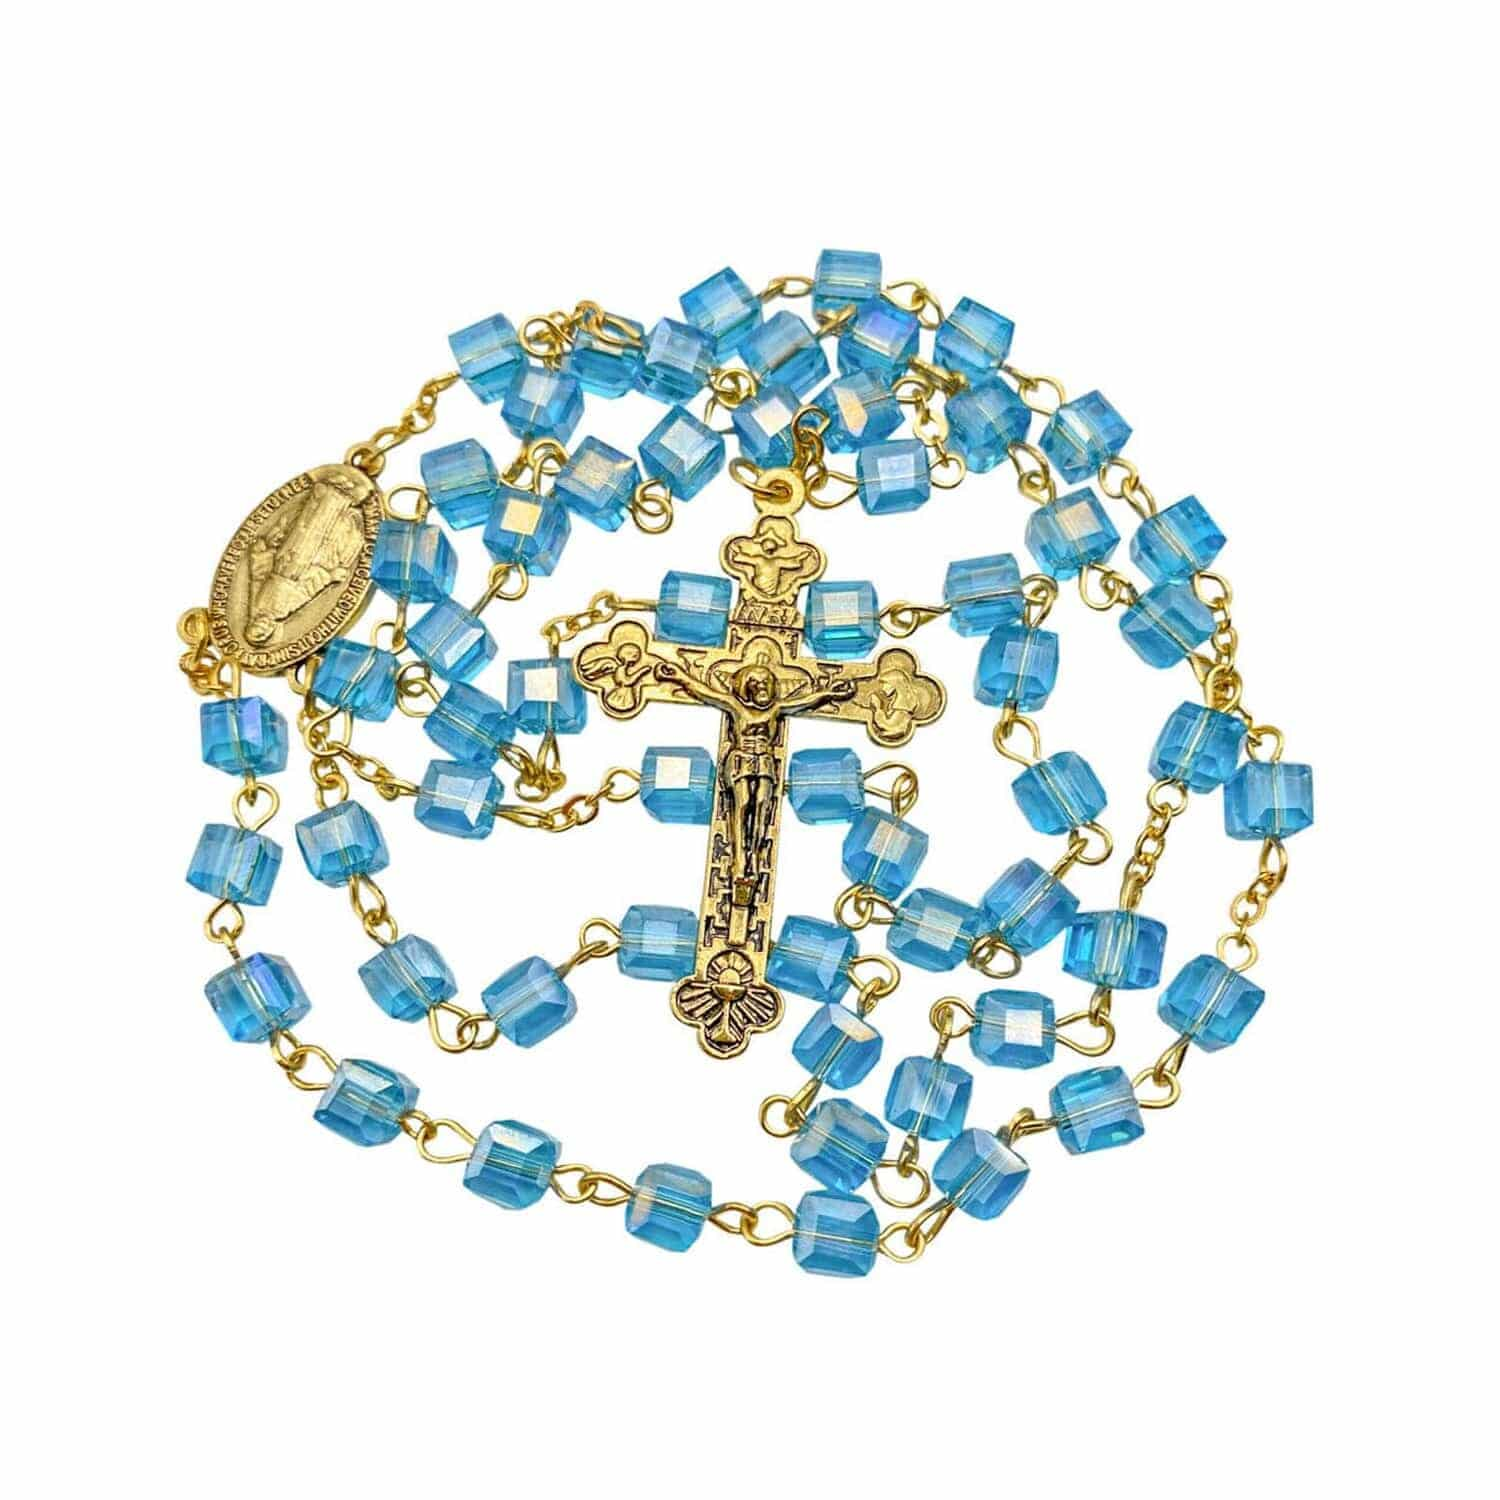 Why Gifting a Catholic Faith Item is so Touching and Important?